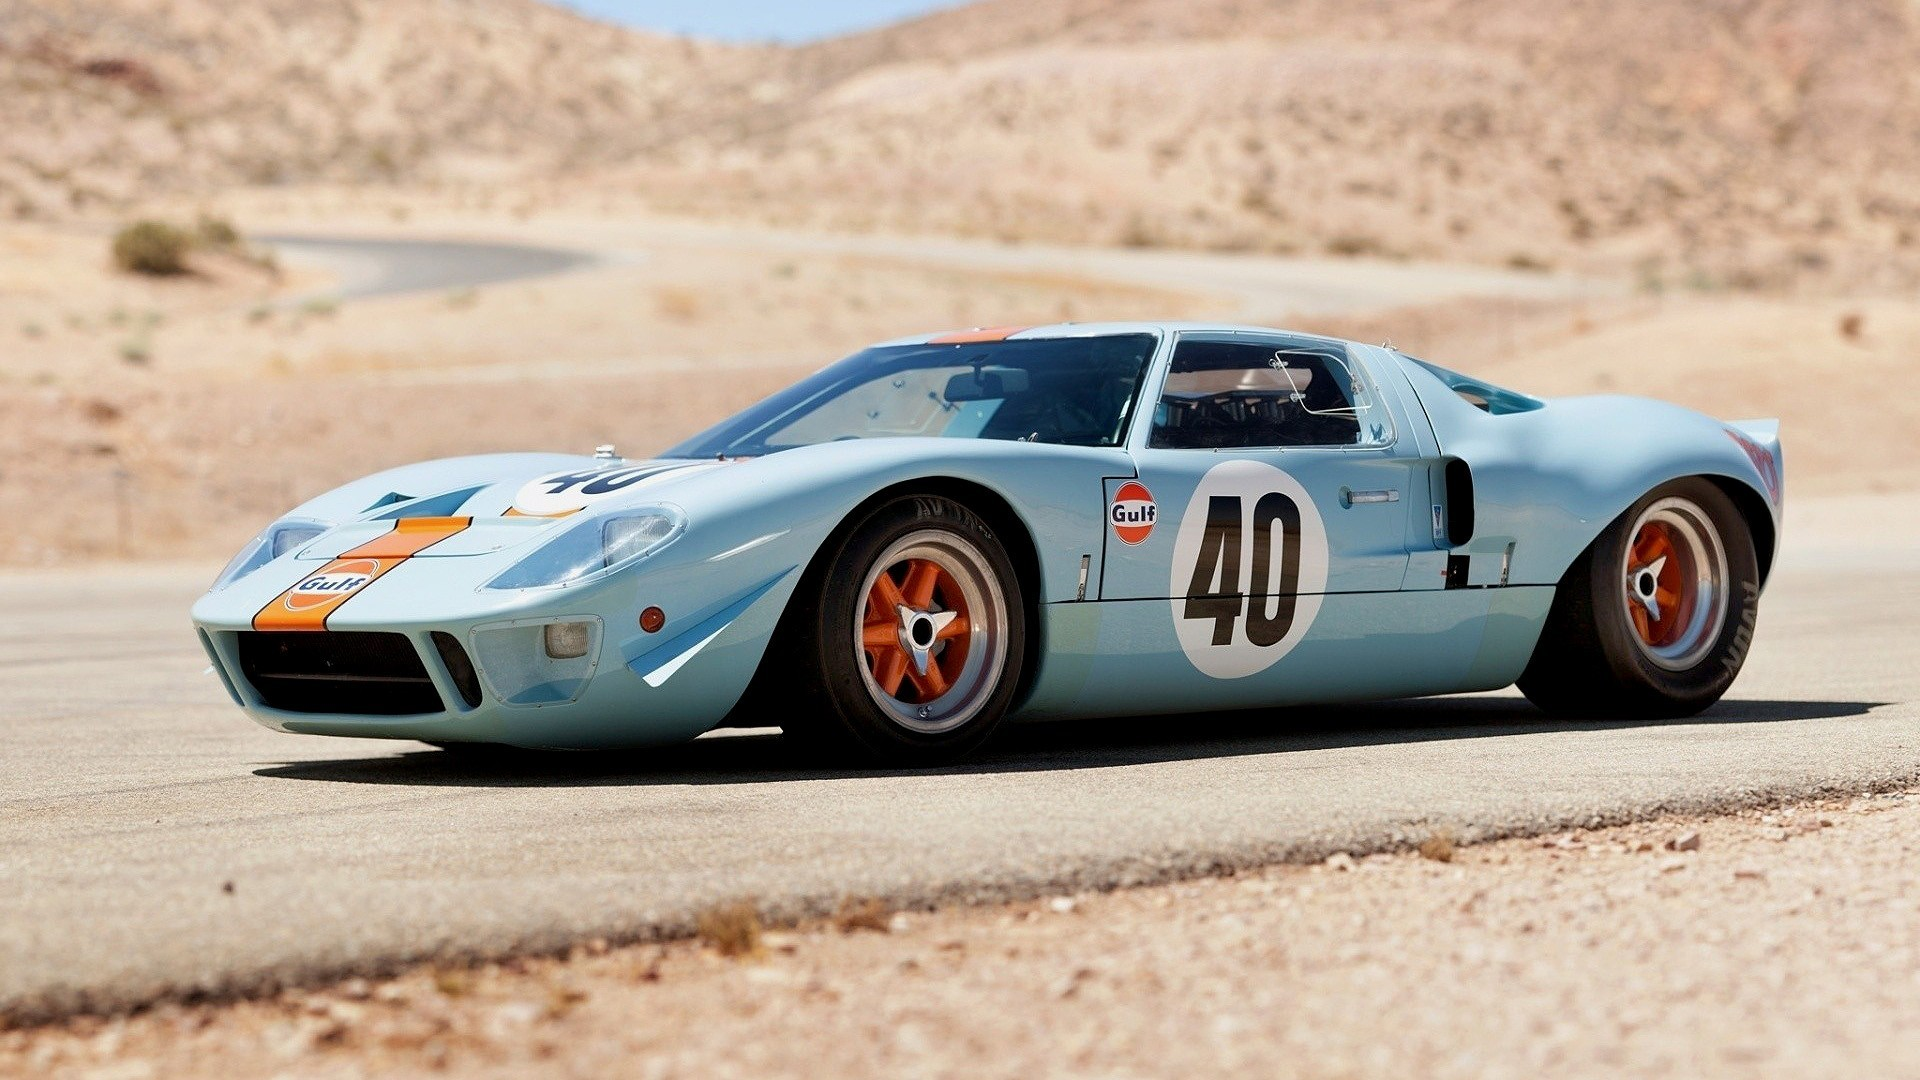 1966-ford-gt40-cars-widescreen-2572666-1920x1080